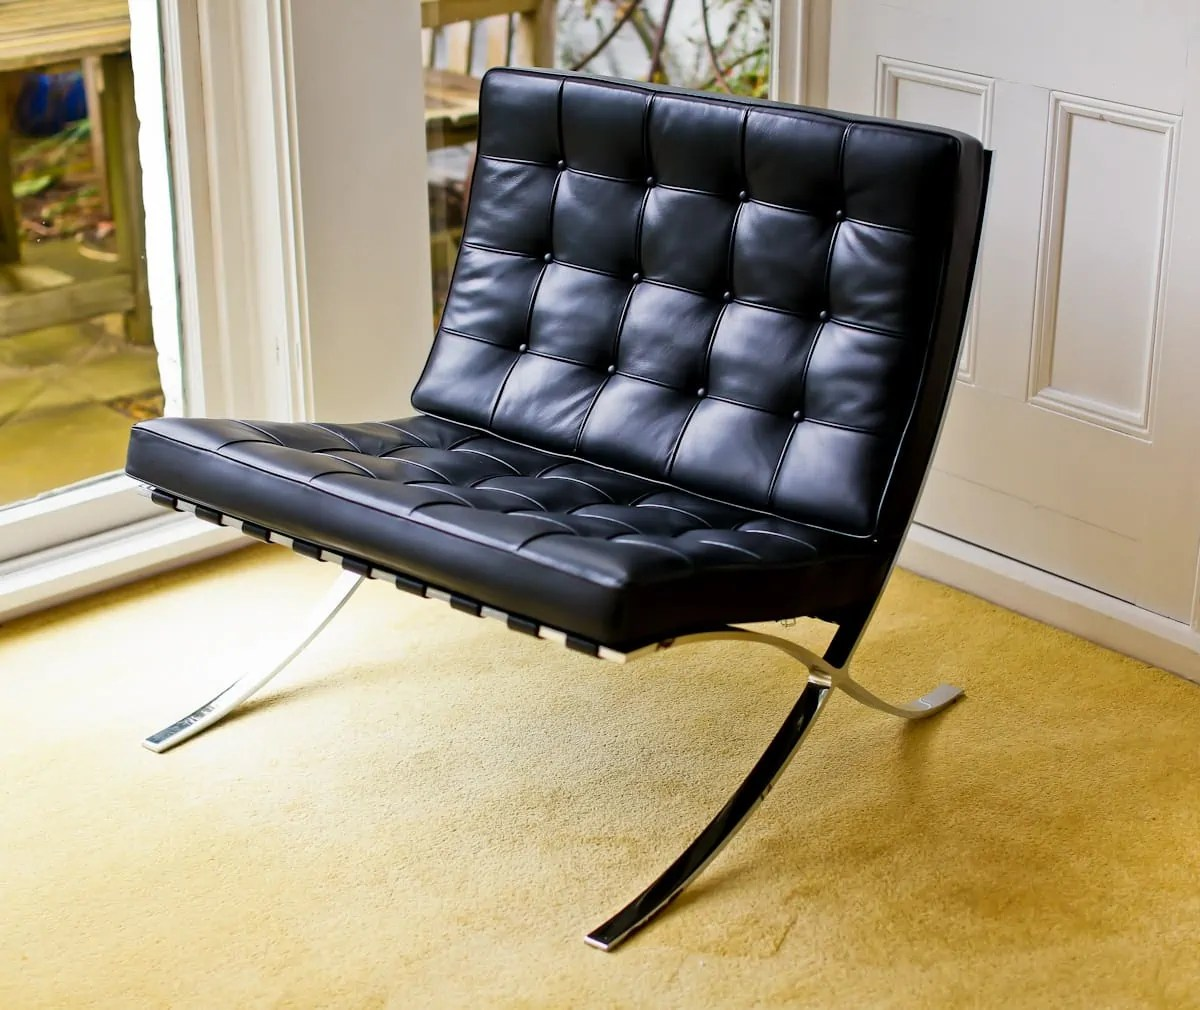 barcelona chair leather co design office chairs | knoll mies van der rohe alto stile